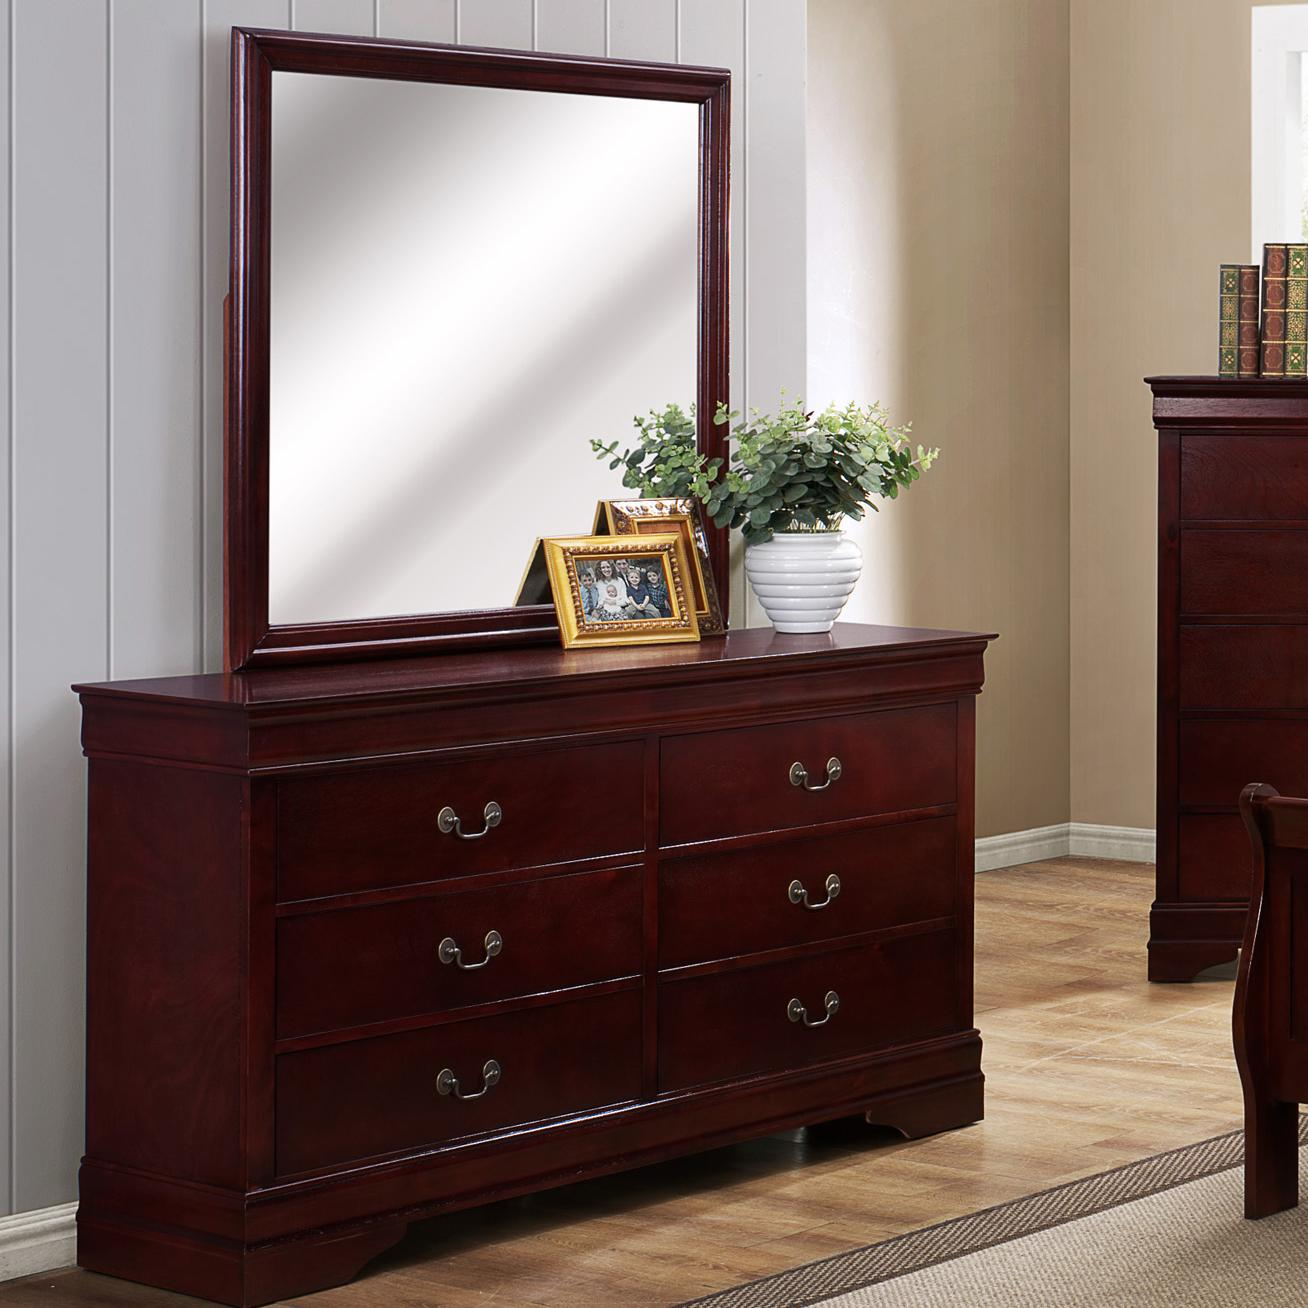 B3800 Louis Phillipe Dresser and Mirror by Crown Mark at Wilcox Furniture